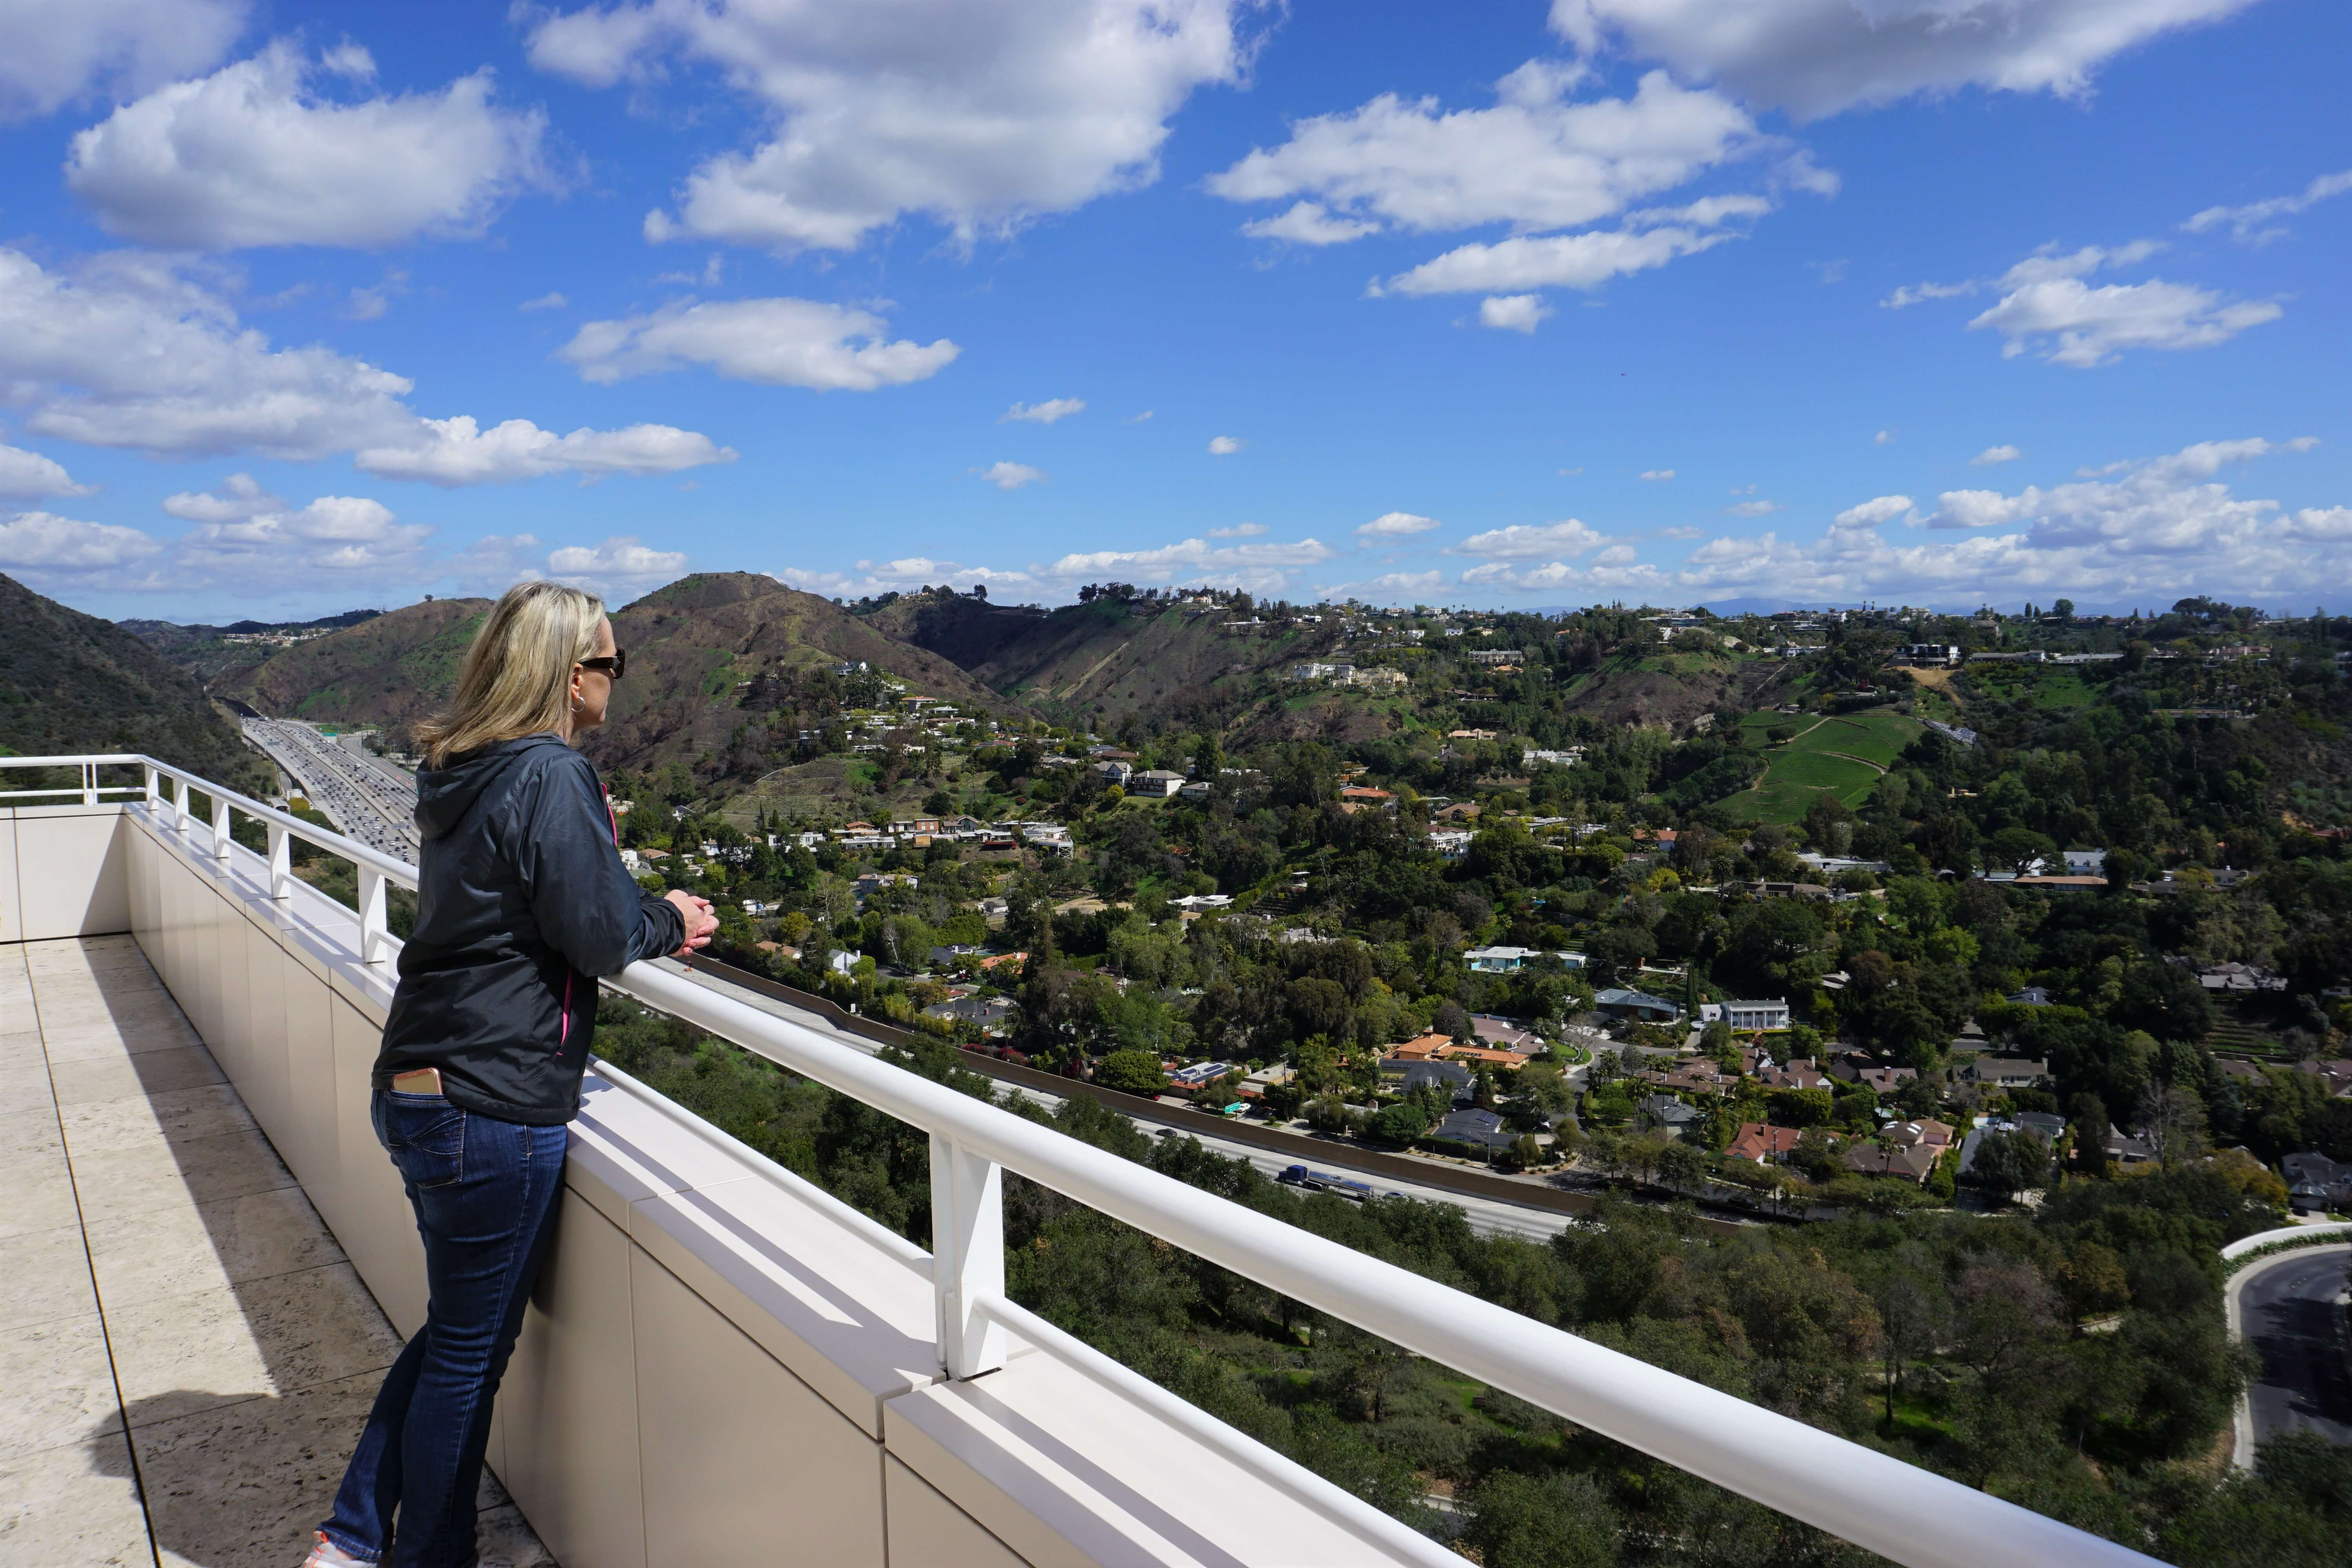 Wendy enjoying the view of the surrounding homes and hills as seen from the Getty Museum